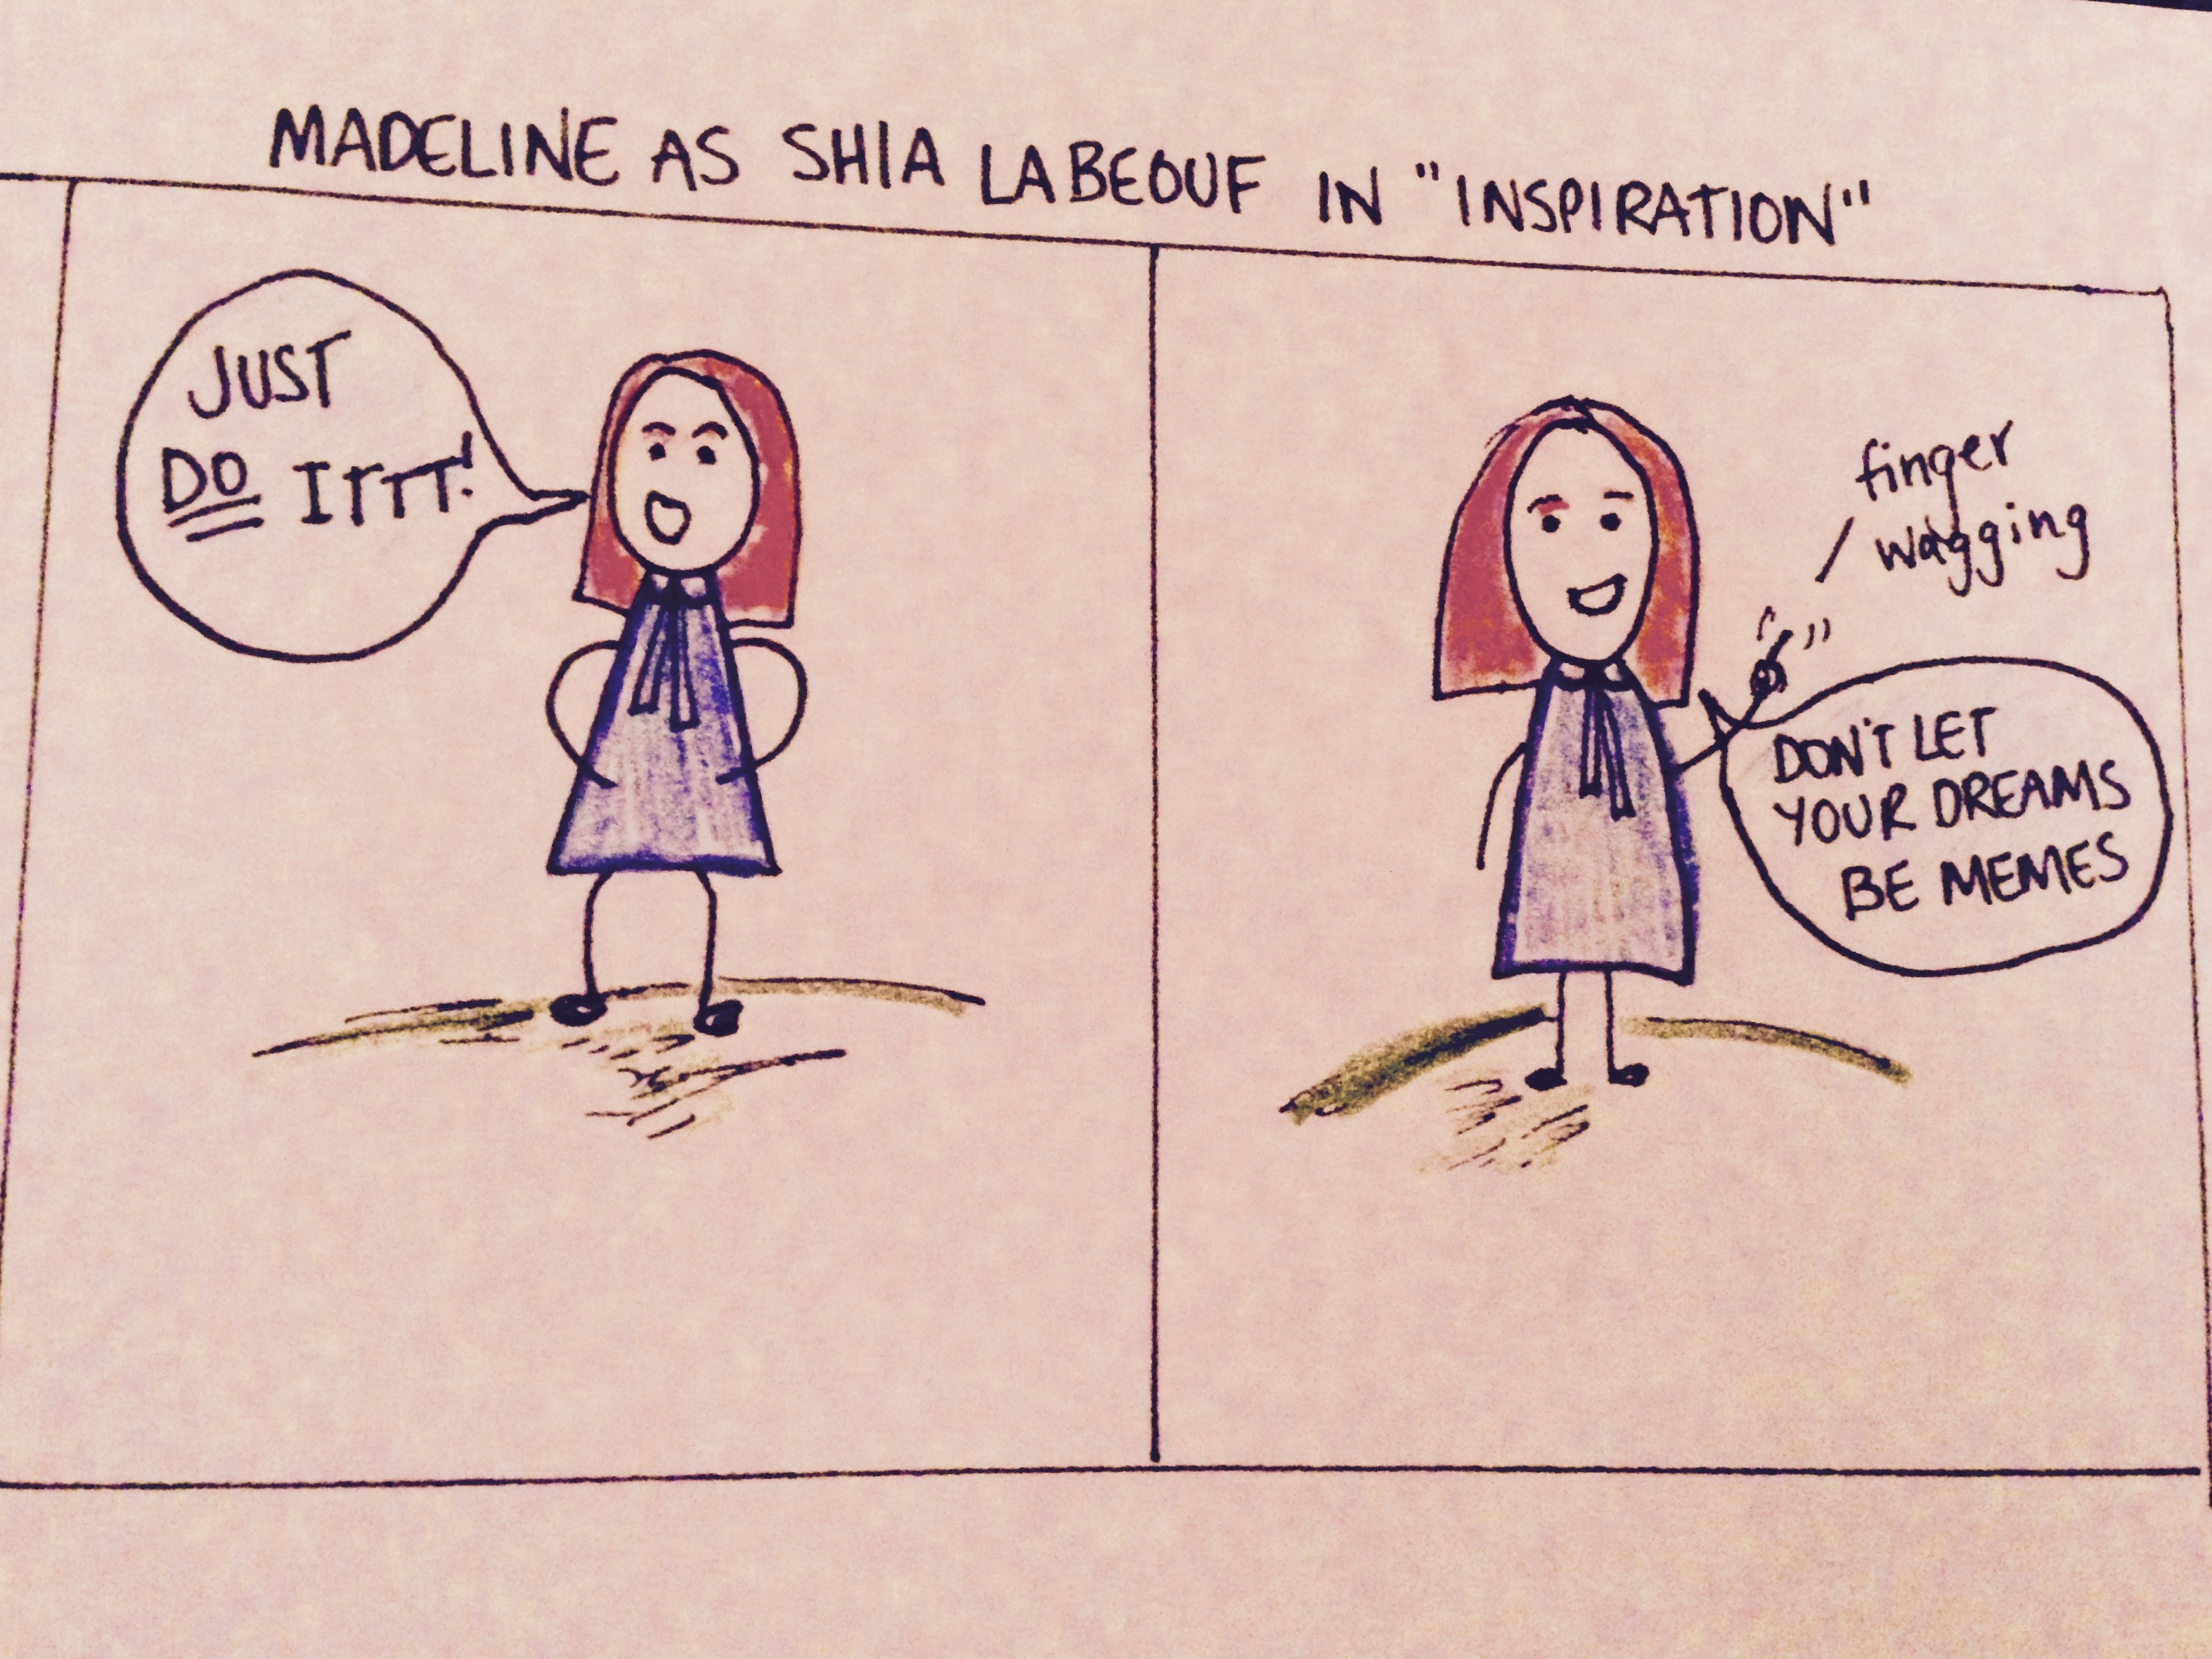 """A hand drawn comic of stick-figure Madeline saying """"Just do it"""" in the style of Shia La Boeuf."""